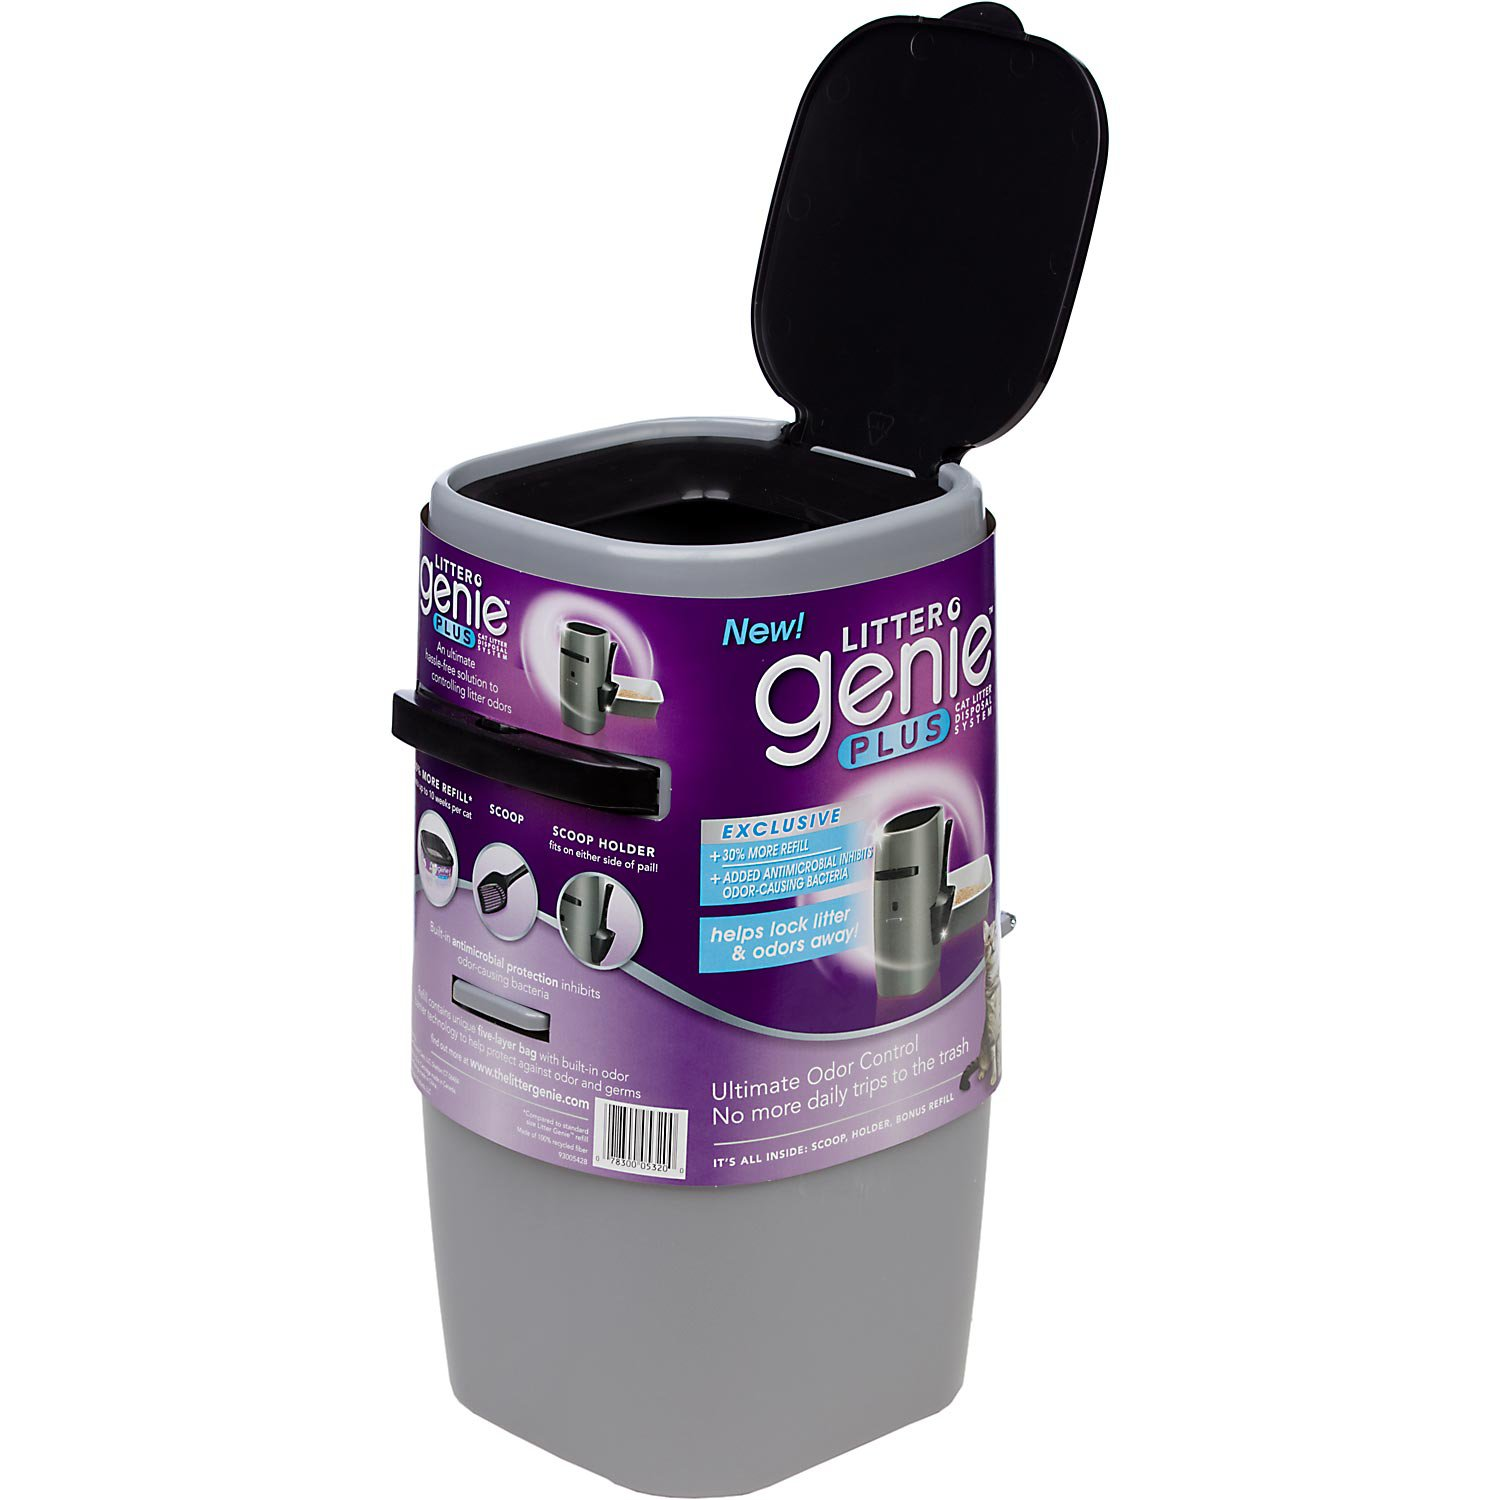 Litter genie plus cat litter disposal system in silver petco for Dog litter box petco